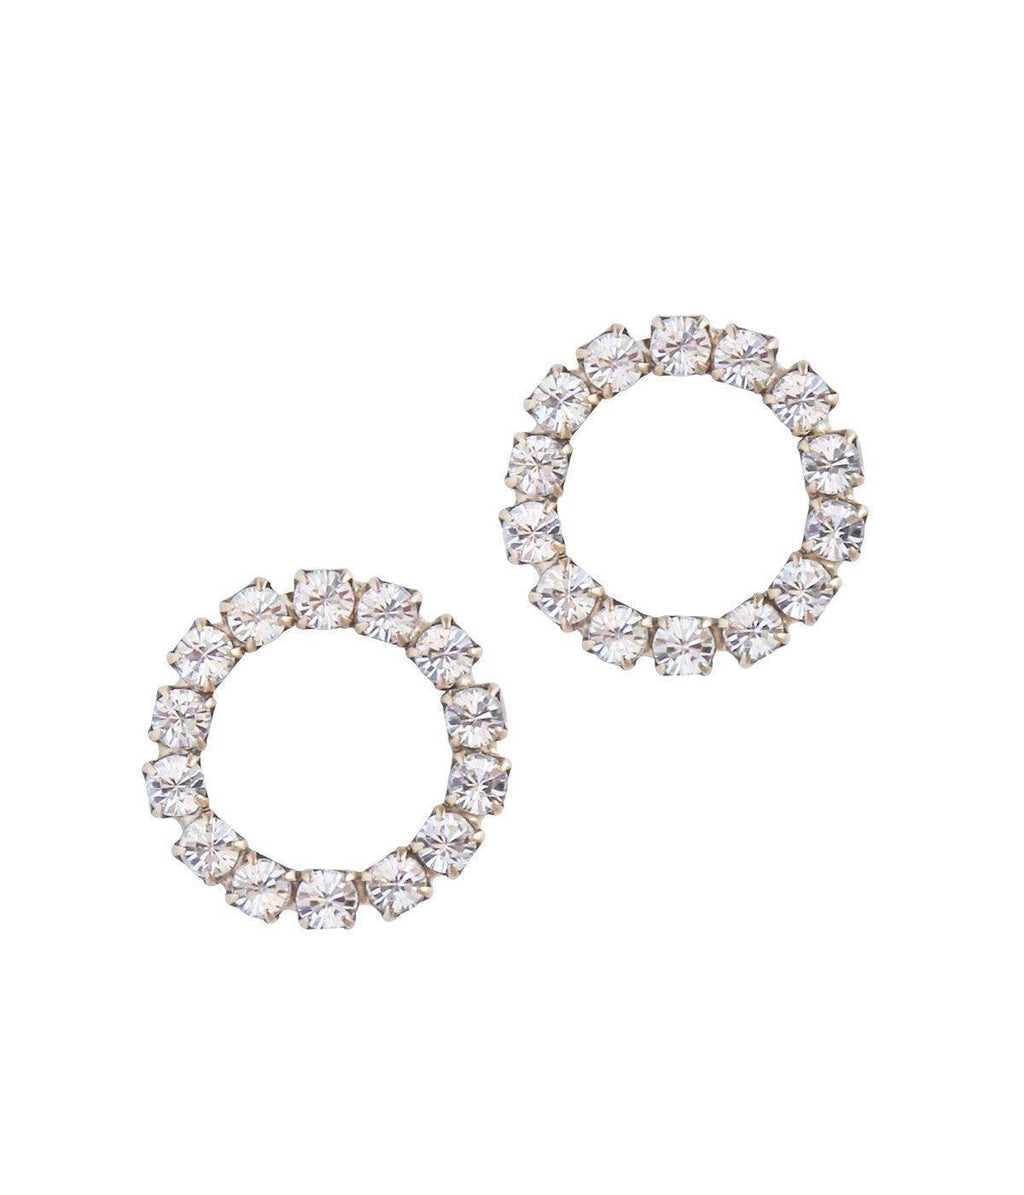 forward facing hoop earrings - crystal circle statement earring